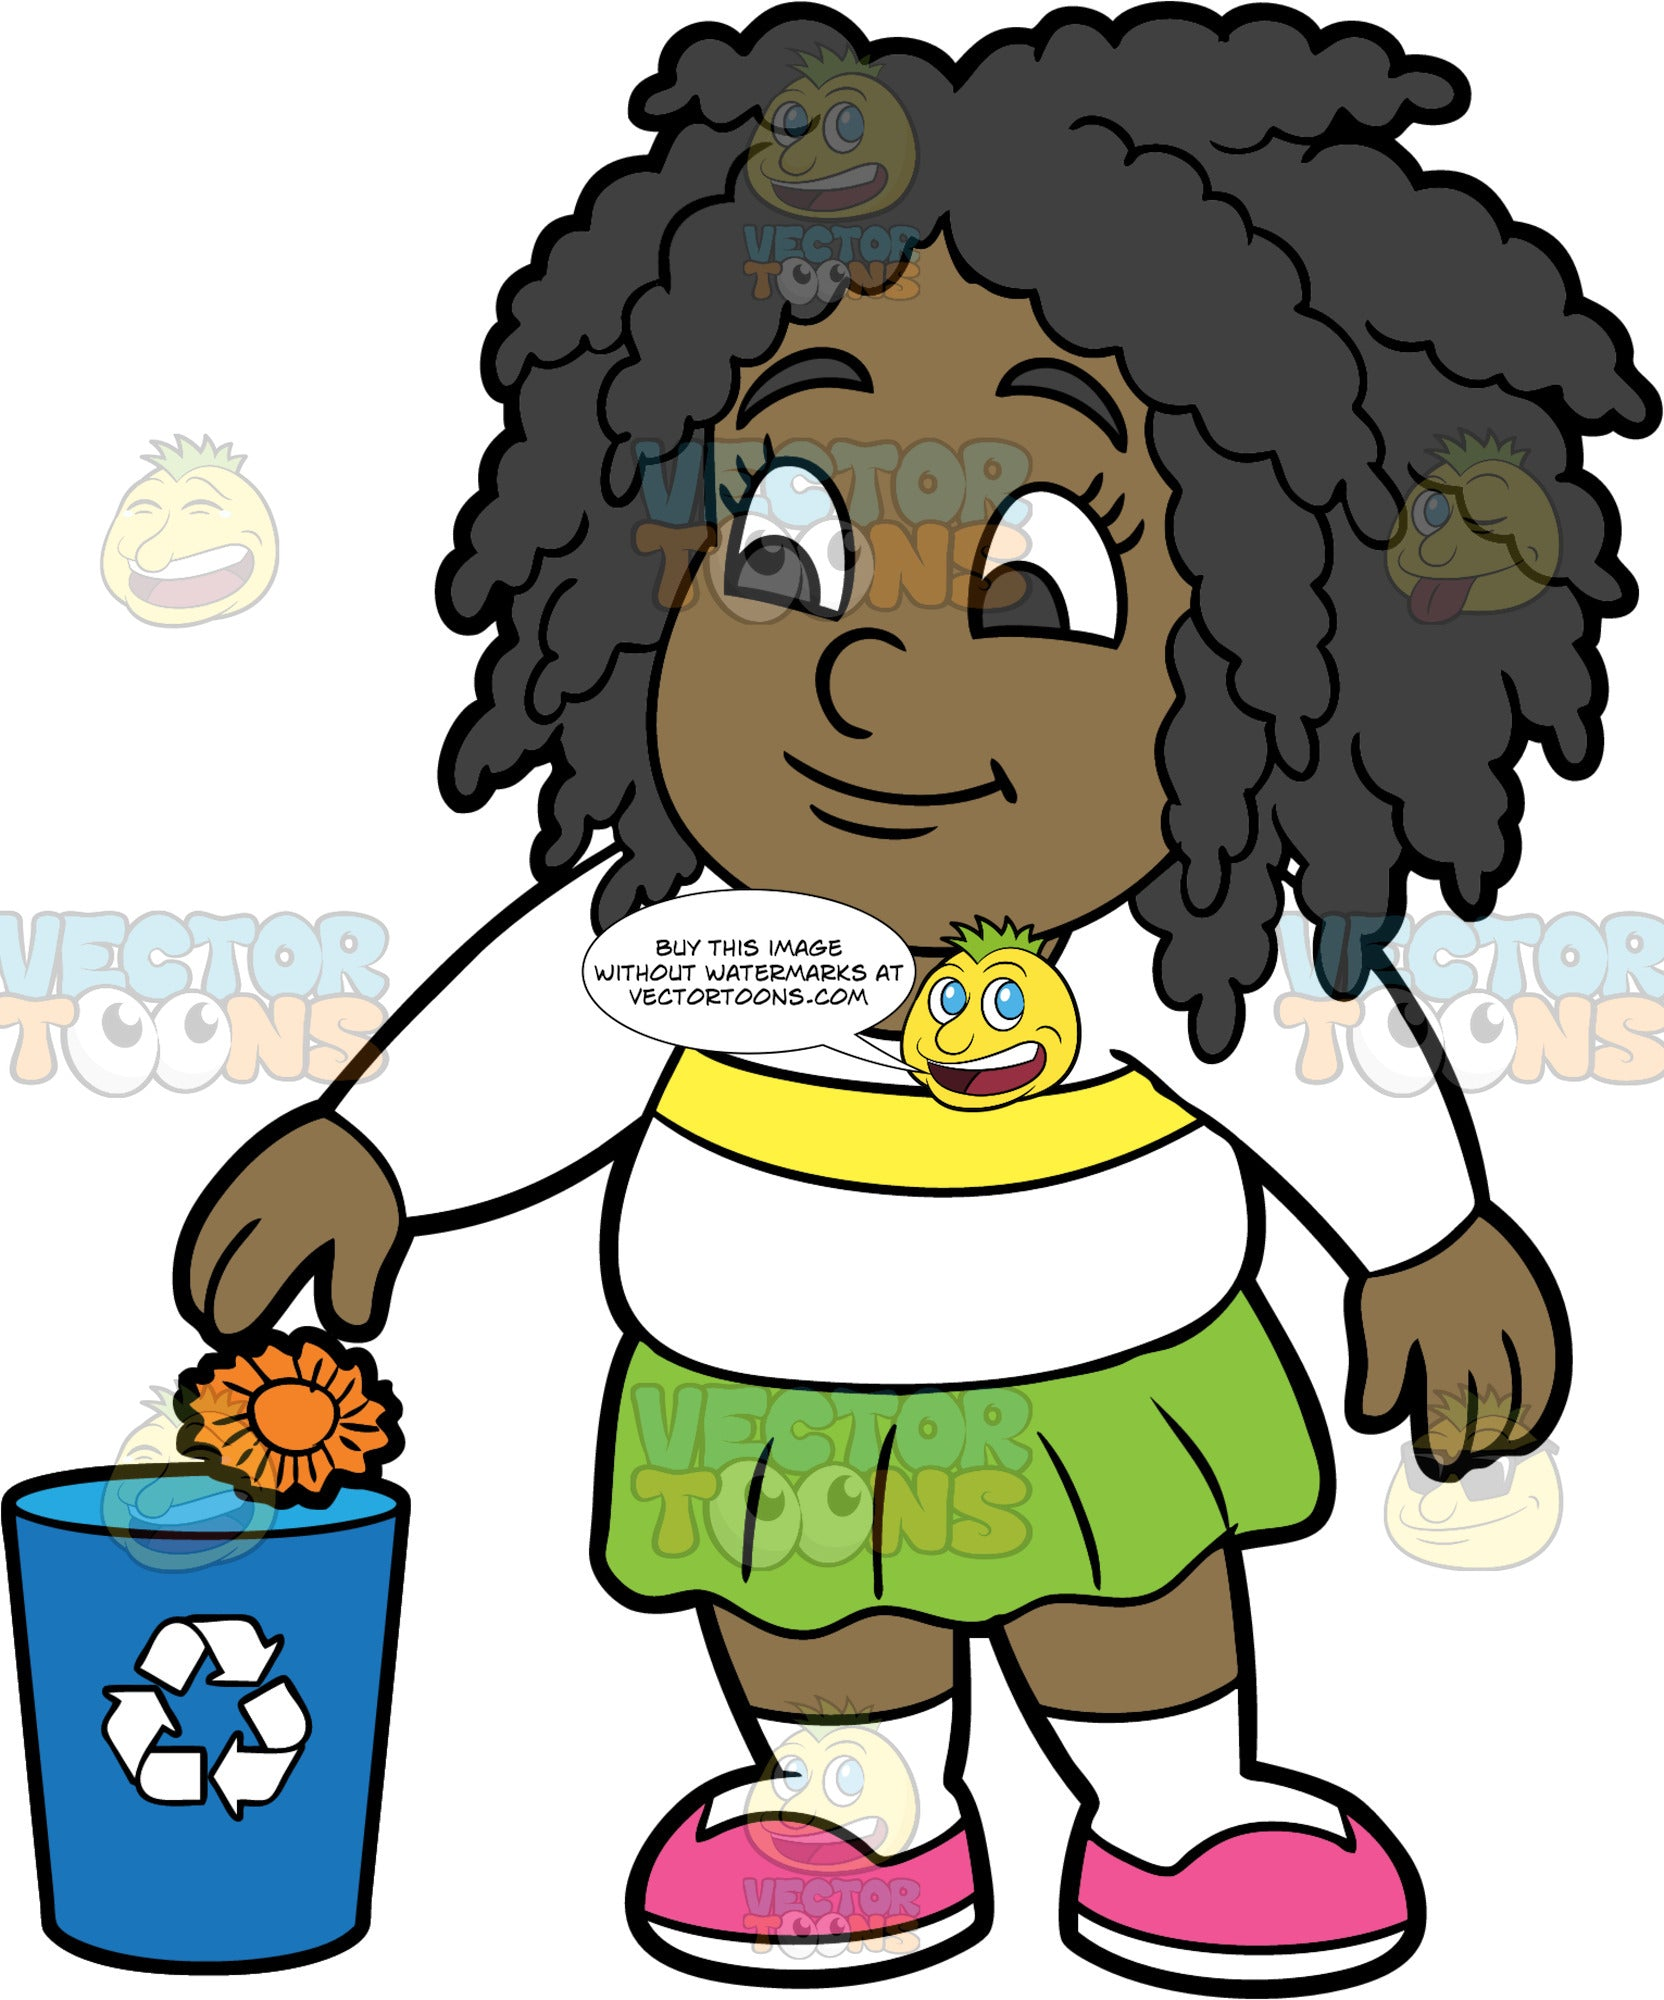 Young Lisa Throwing A Piece Of Paper Into A Recycling Bin. A black girl wearing a green skirt, a white shirt with a yellow stripe, and pink shoes, throwing a piece of crumpled up orange paper into a recycling bin